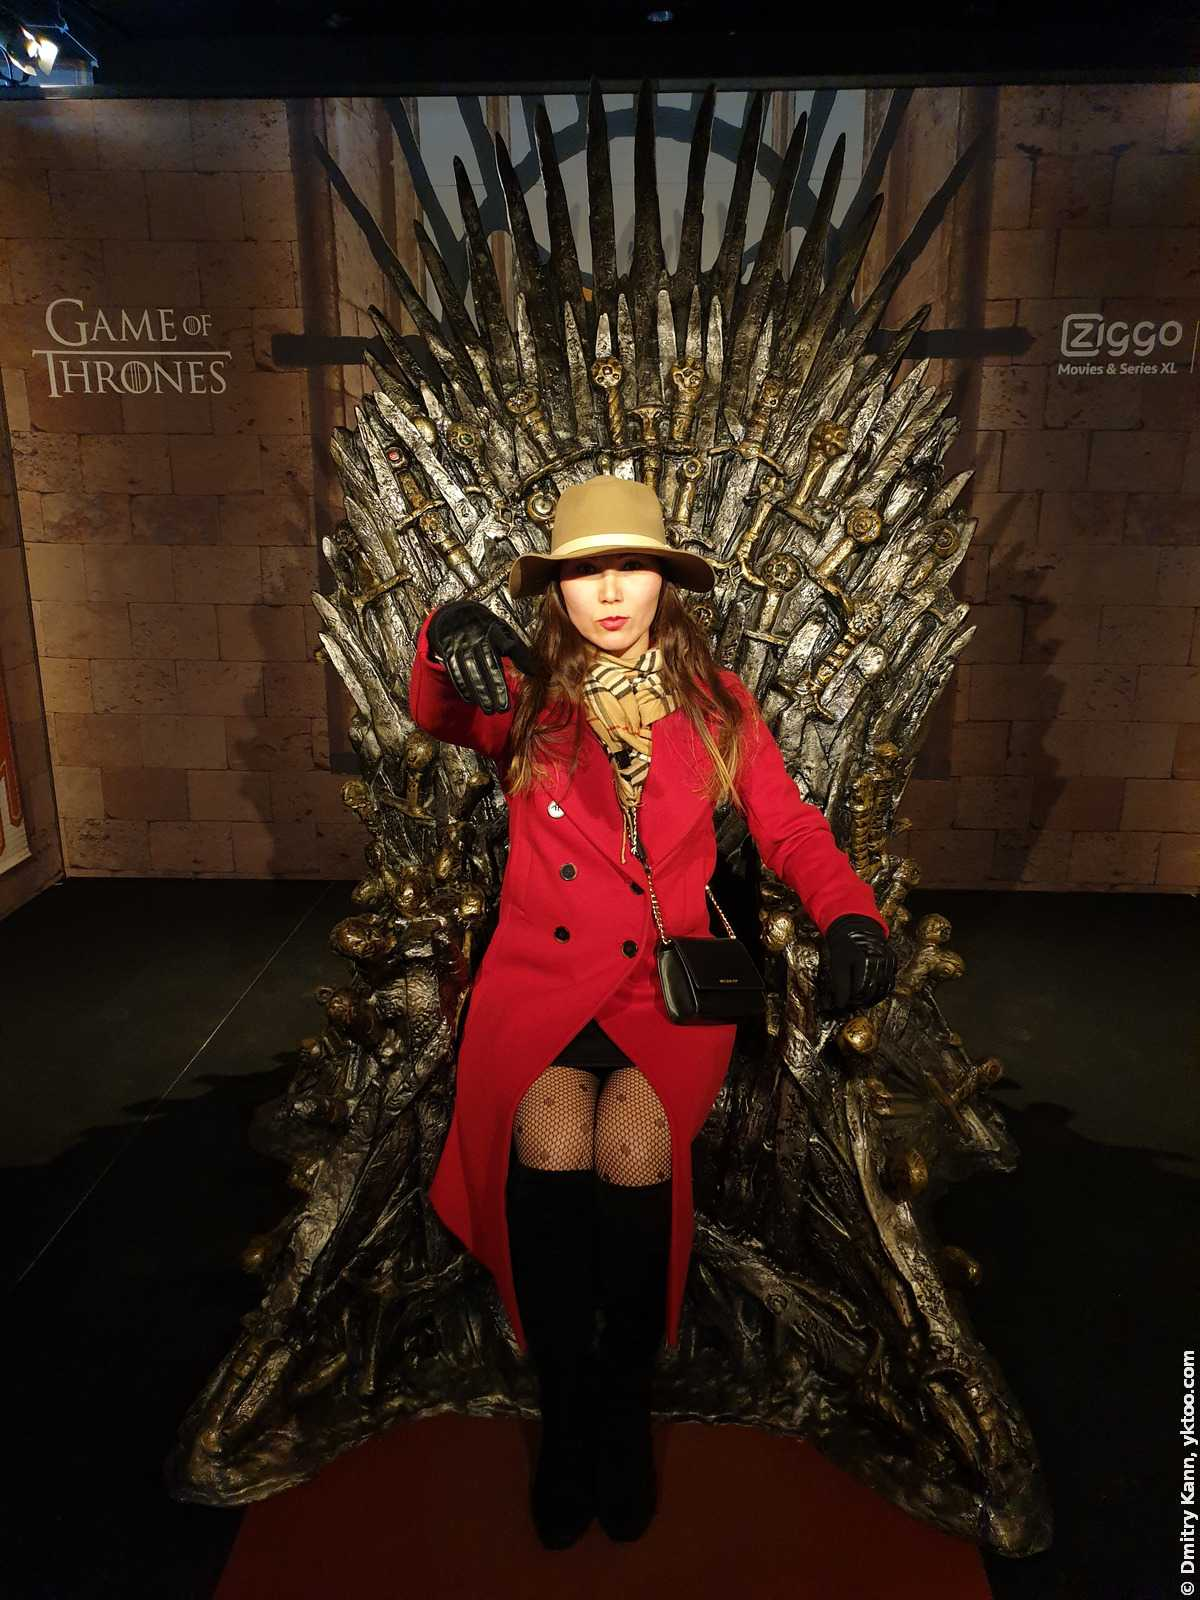 The Queen of the Iron Throne.